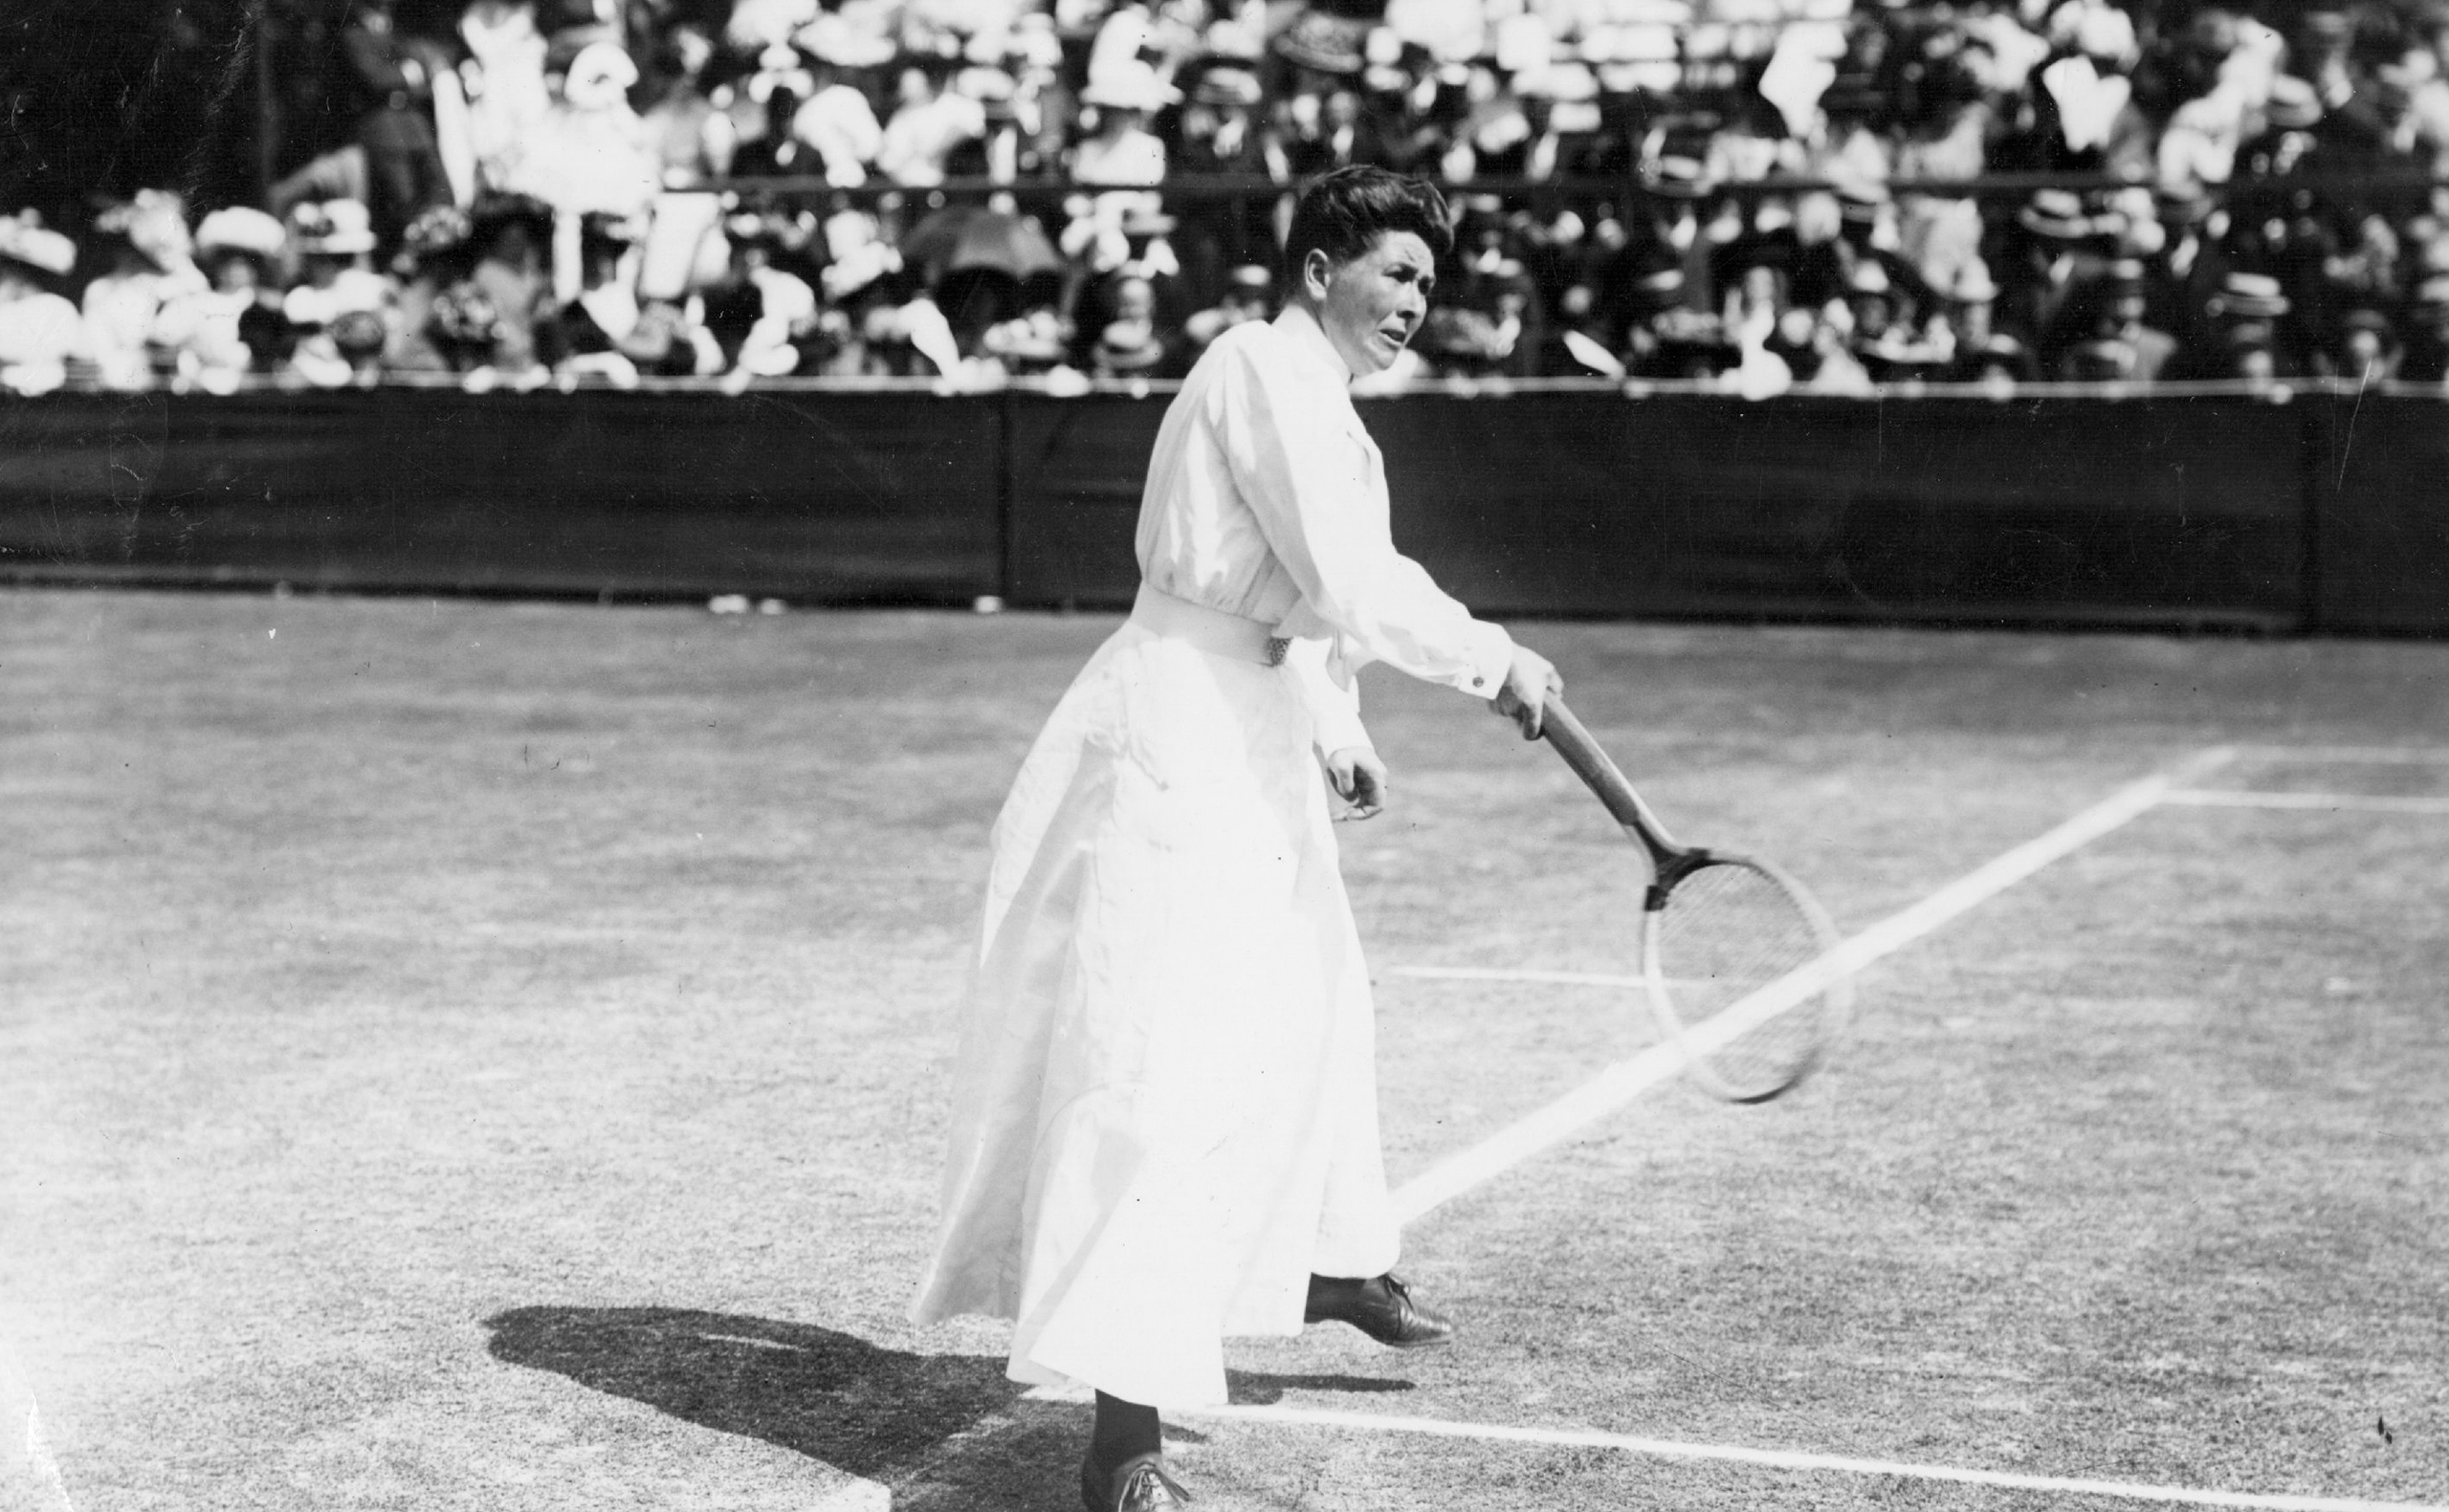 Wimbledon ladies' singles champion Charlotte Sterry (nee Cooper) in action at Wimbledon